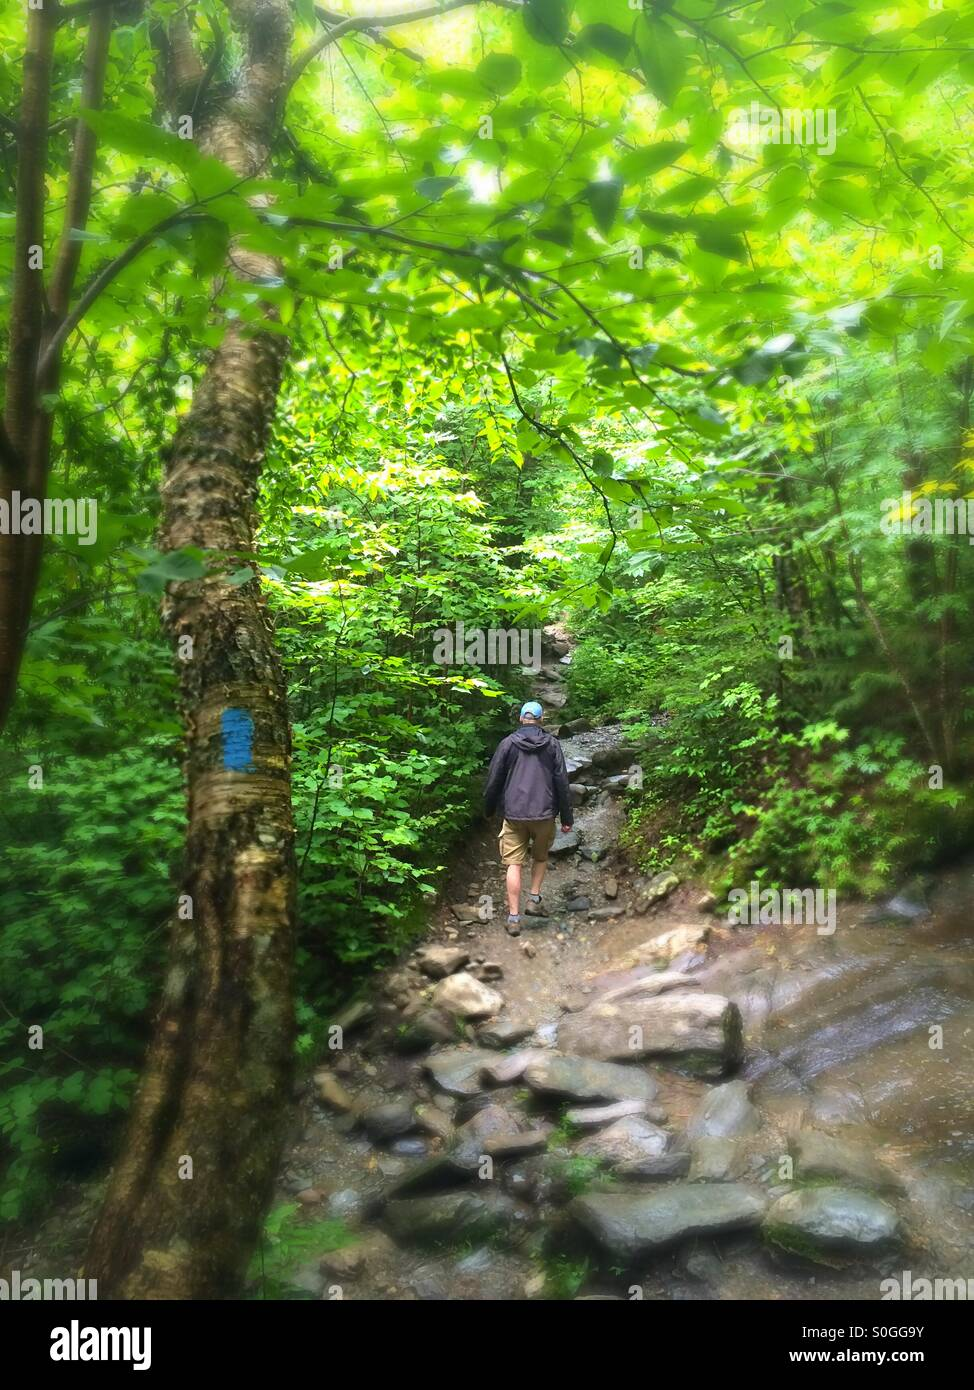 Man hiking on path towards Sterling Pond, Smugglers Notch, Stowe, Vermont - Stock Image